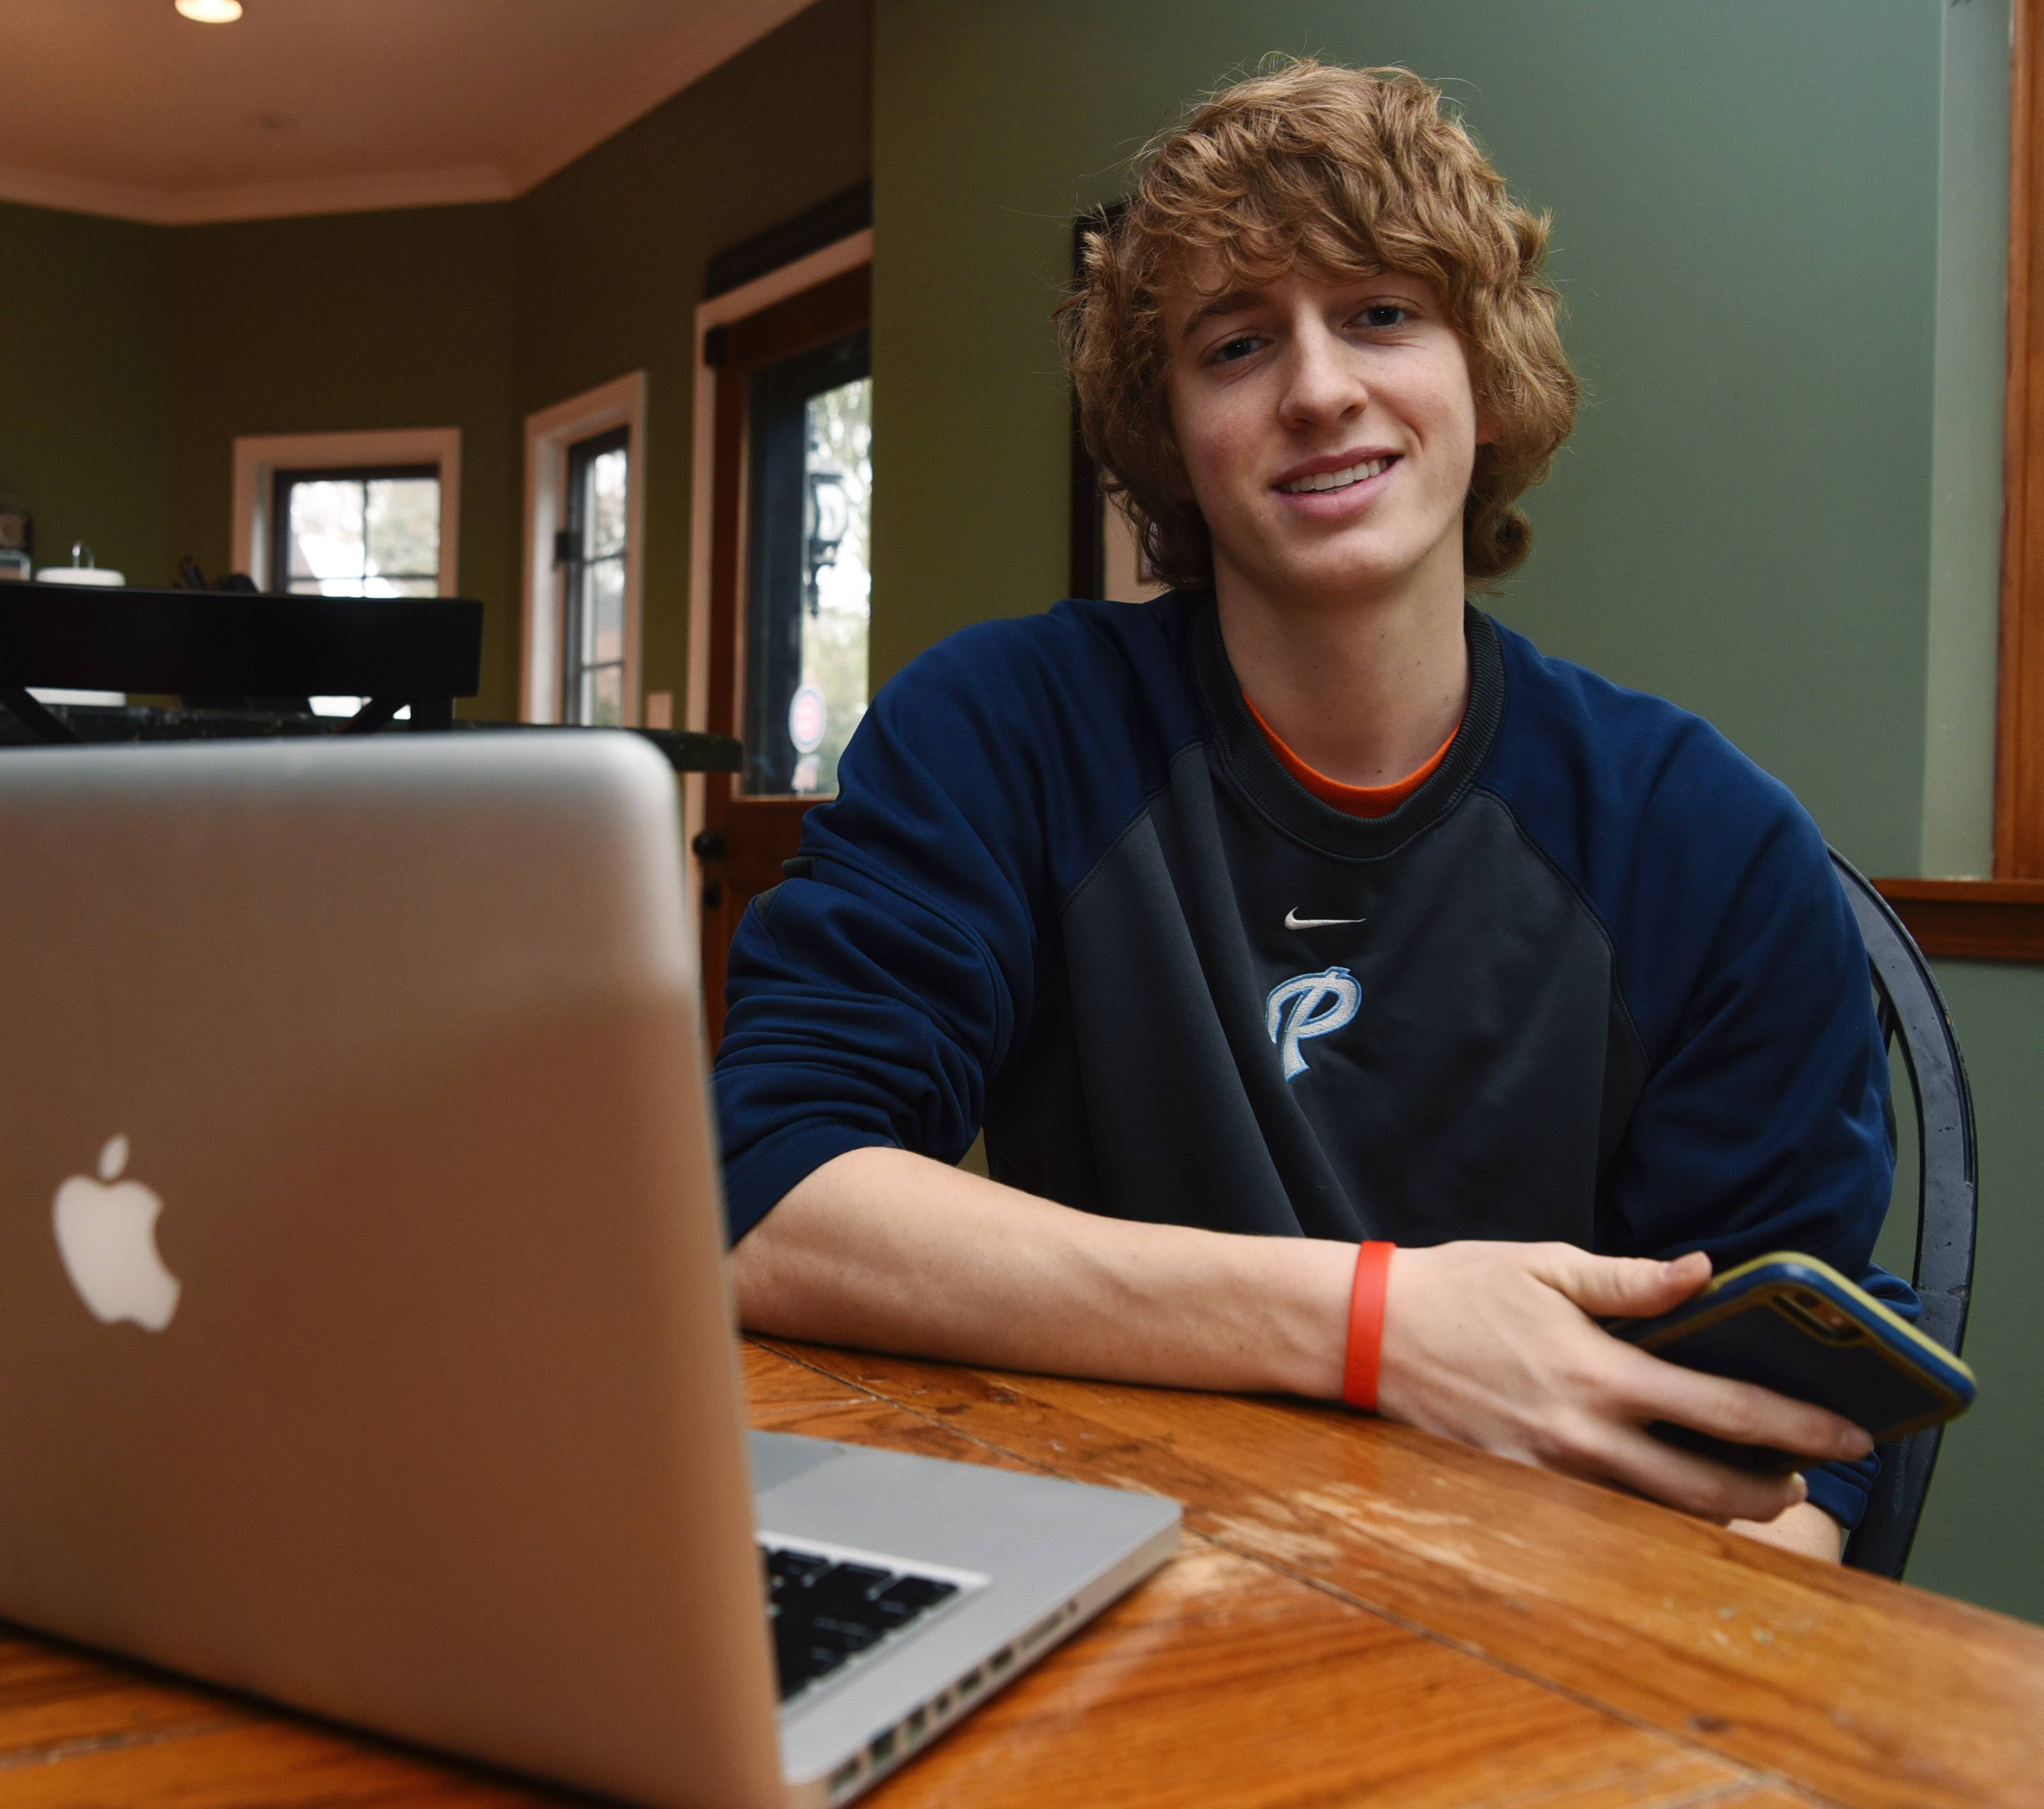 Connor Morrison of Arlington Heights is a young entrepreneur who has millions of followers on Instagram.